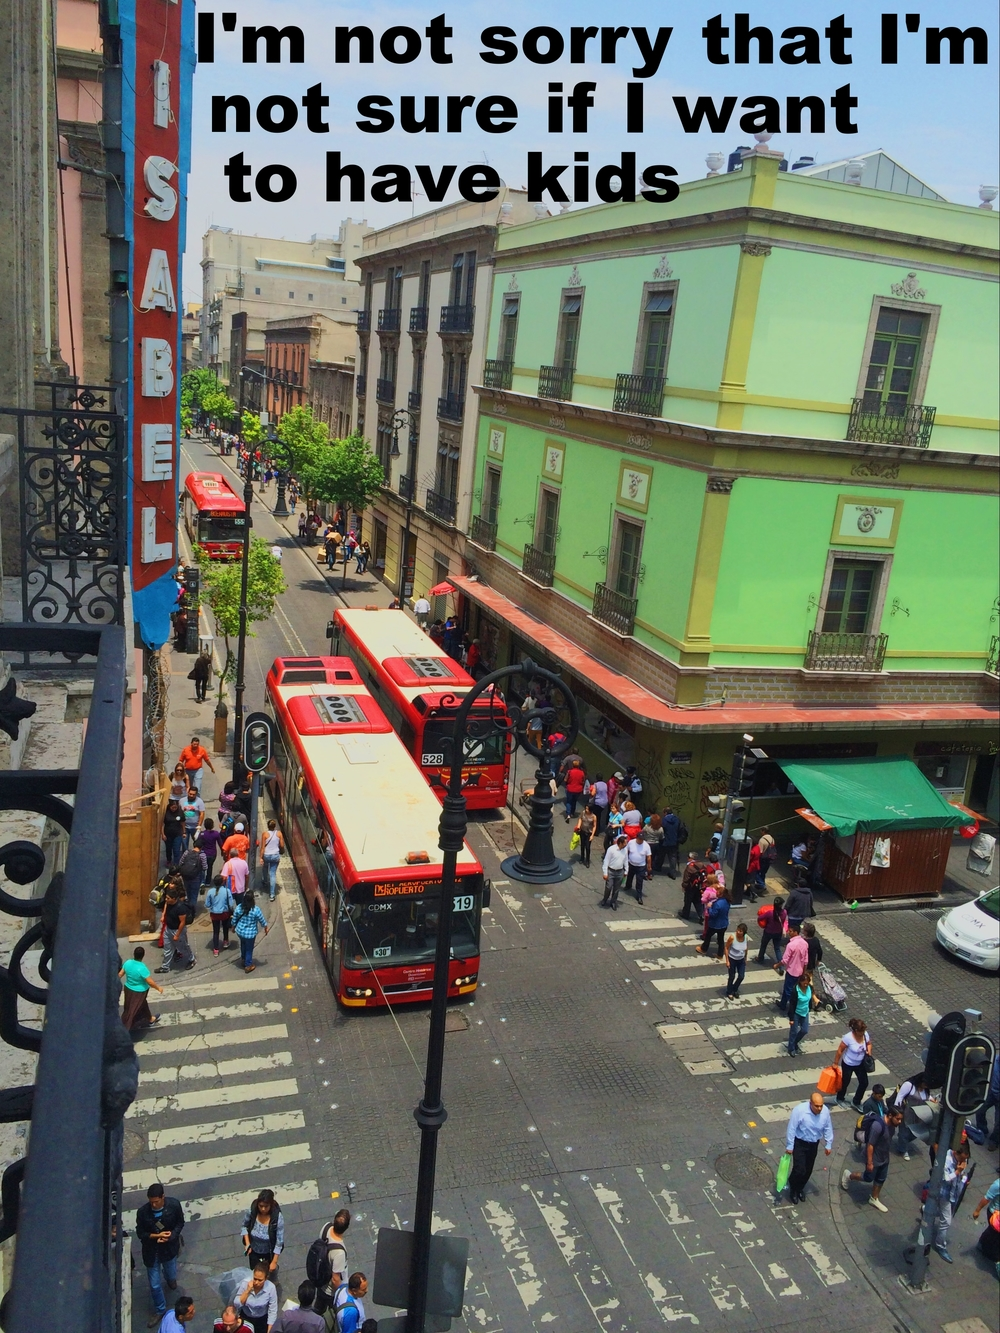 "Julie Ann May 26 2016 Image of a busy street taken from above. Pedestrians cross the street, and two large red buses pass one another in the intersection. ""I'm not sorry that I'm not sure if I want to have kids"" is overlaid."